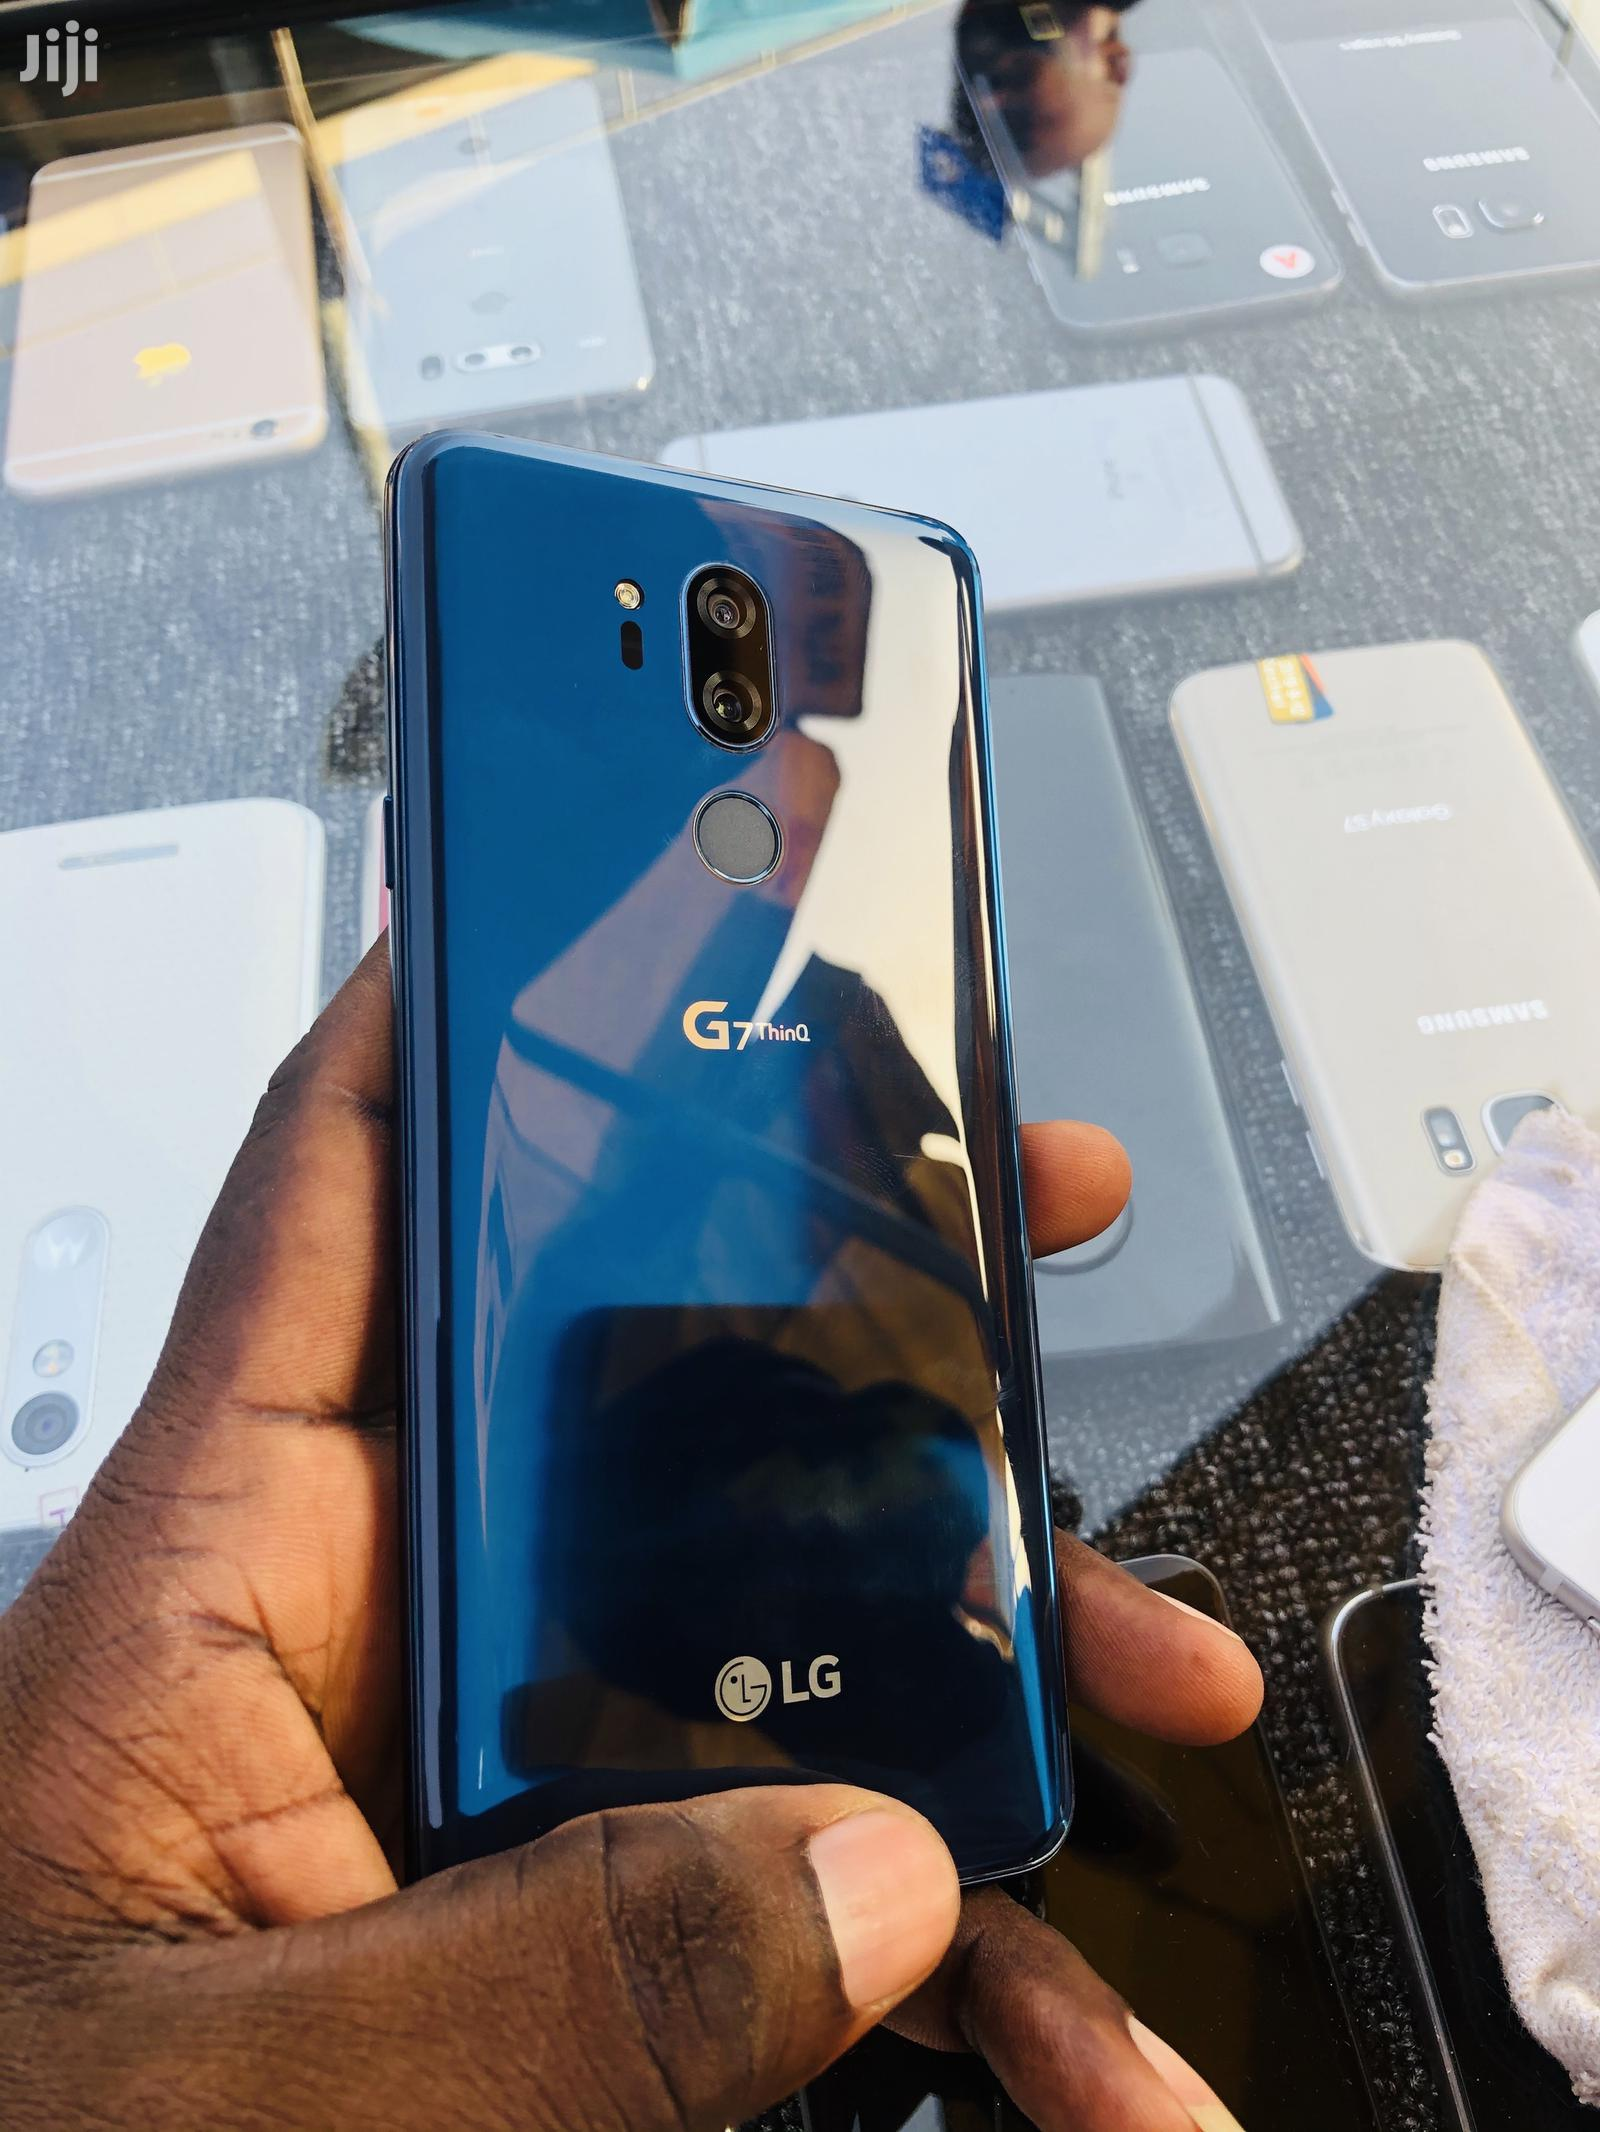 New LG G7 ThinQ 64 GB